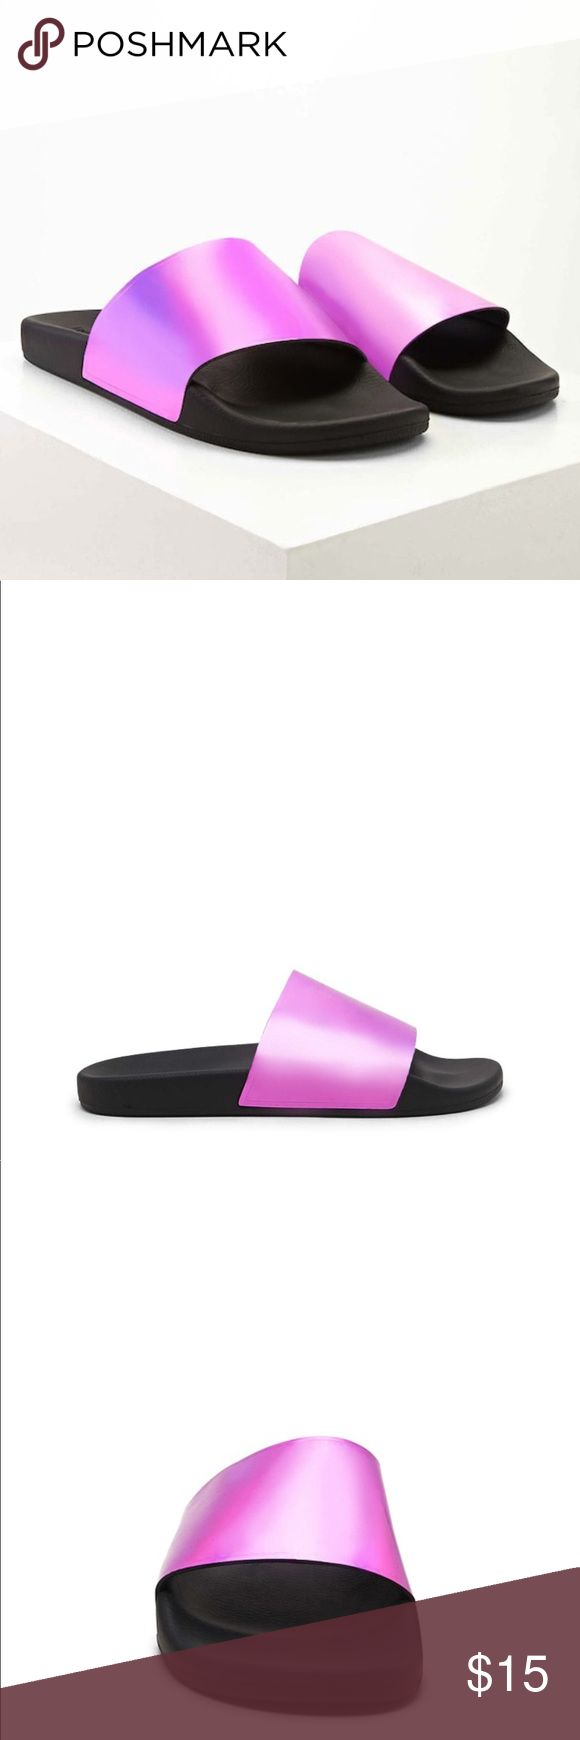 """Metallic Slippers A pair of slides featuring a metallic upper and soft rubber lining and sole. Worn Once                  - THE DETAILS:                                                         - 1"""" platform                                                              - 100% polyester lining Forever 21 Shoes Sandals"""